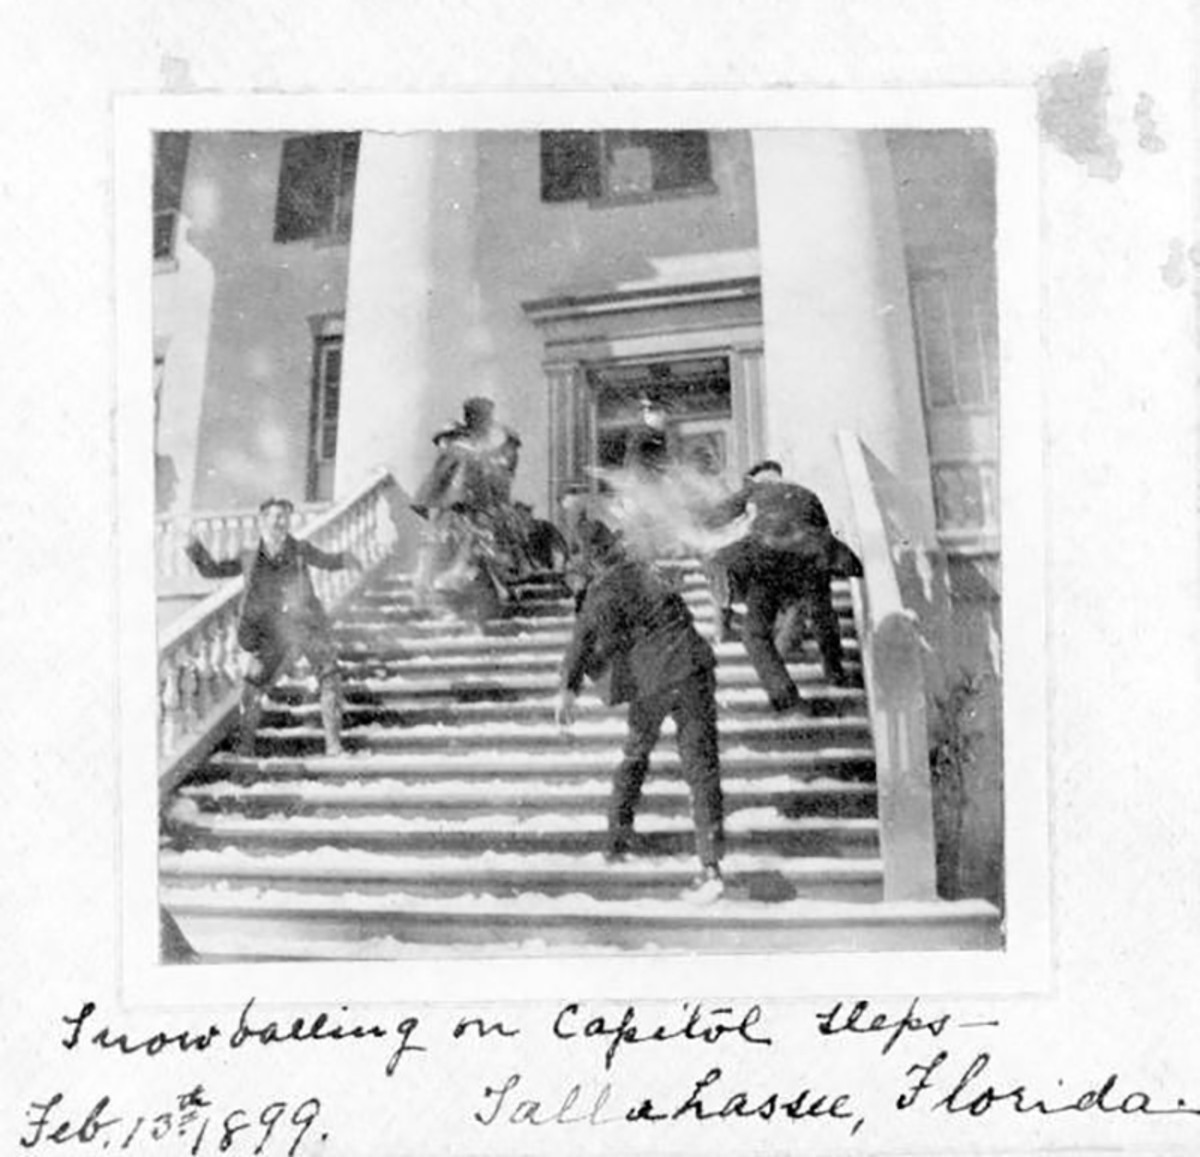 A snowball fight on the steps of the Capitol in Tallahassee, Florida in 1899.